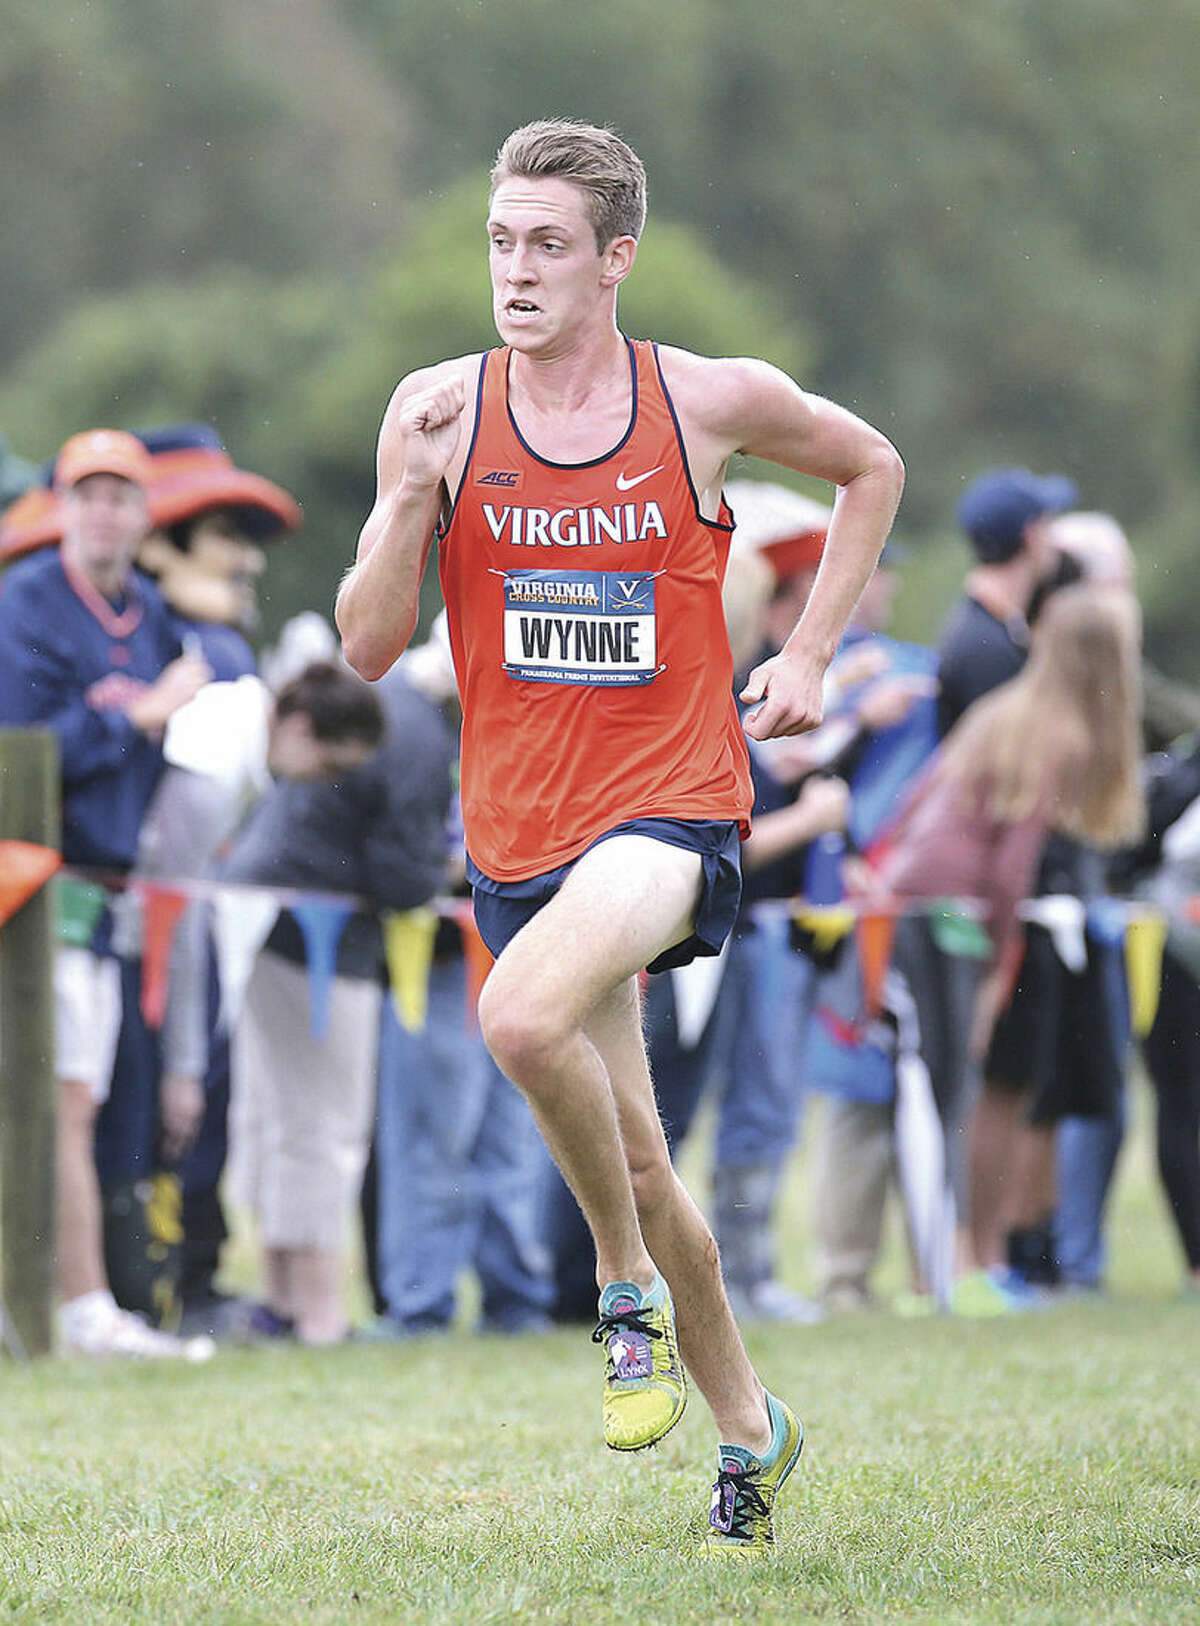 Photo courtesy of UVA Media Relations Westport resident Henry Wynne, a former star runner at Staples High School, is leading the Cavaliers into this Saturady's NCAA Division I championship meet.